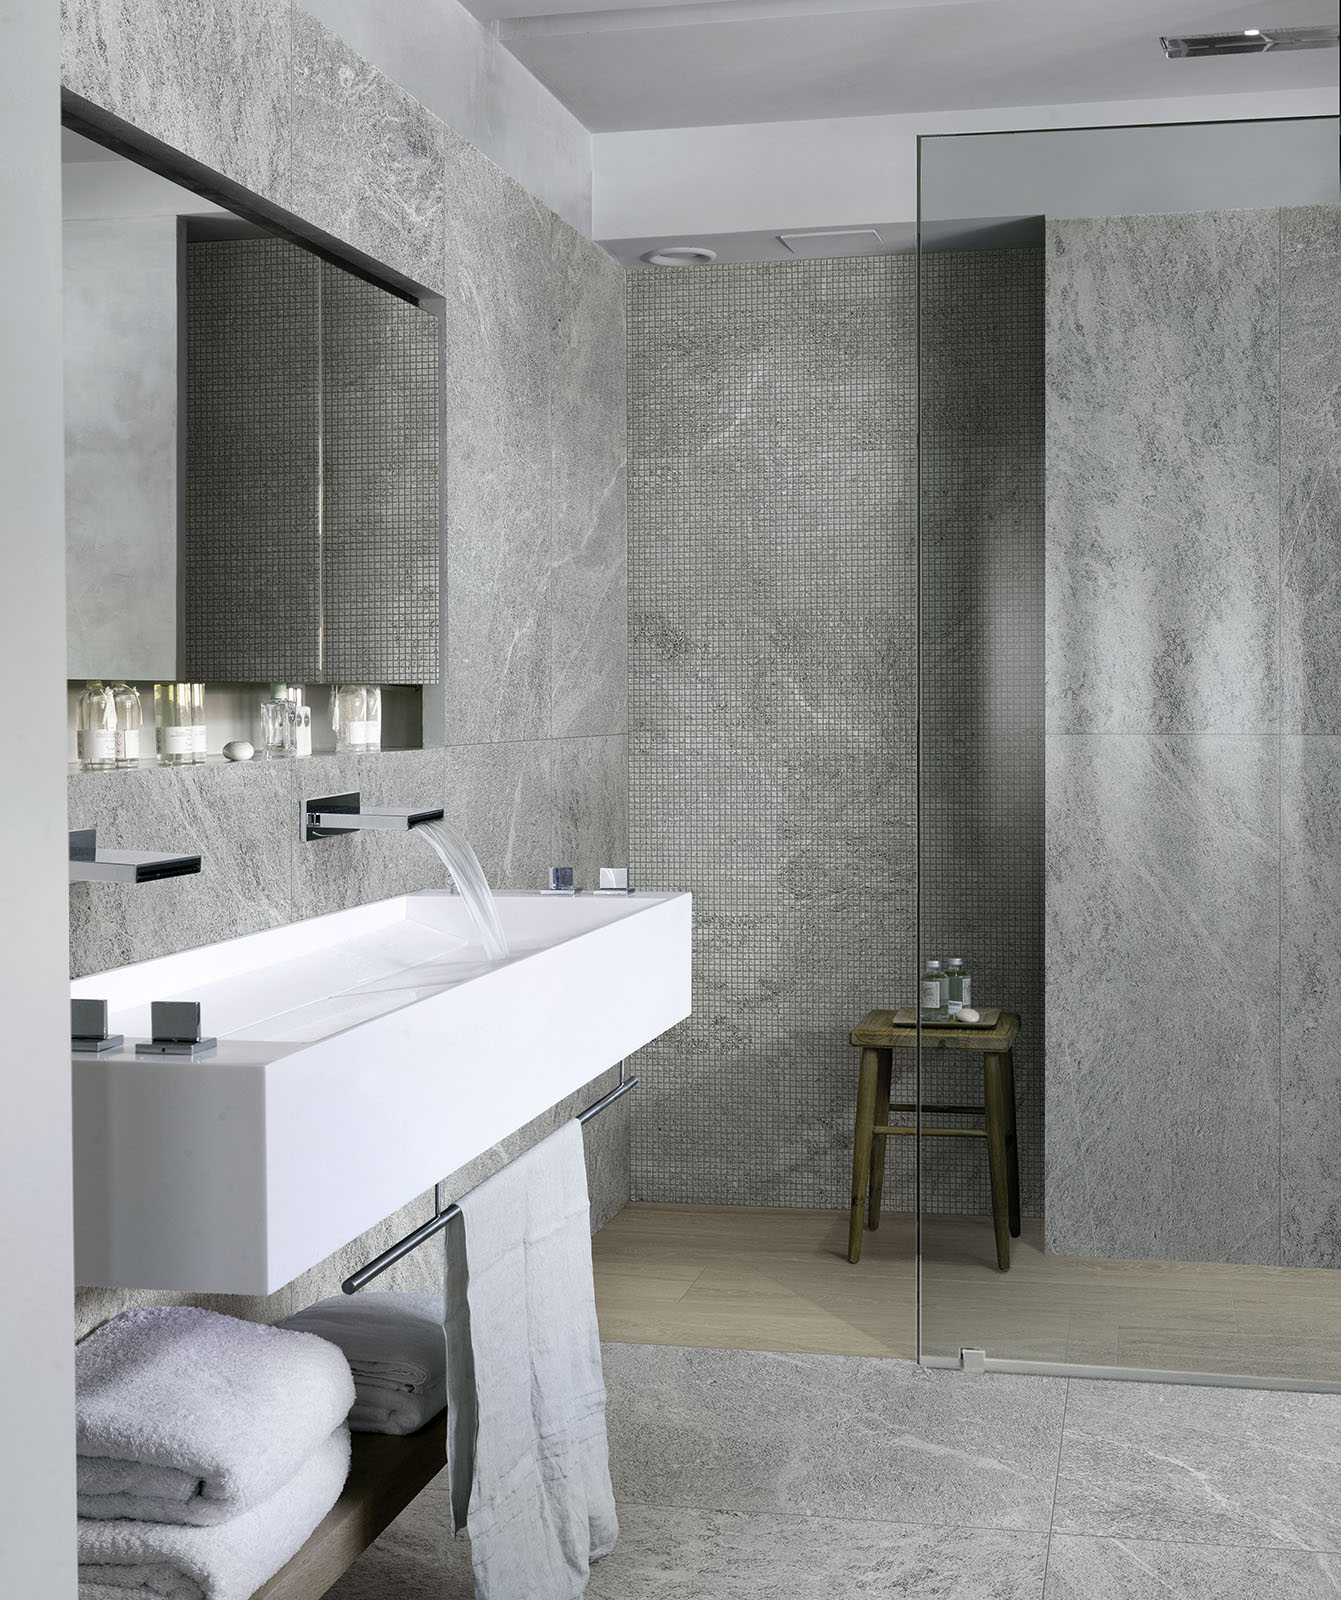 Bathroom Tile: Bathroom Flooring: Ceramic And Porcelain Stoneware